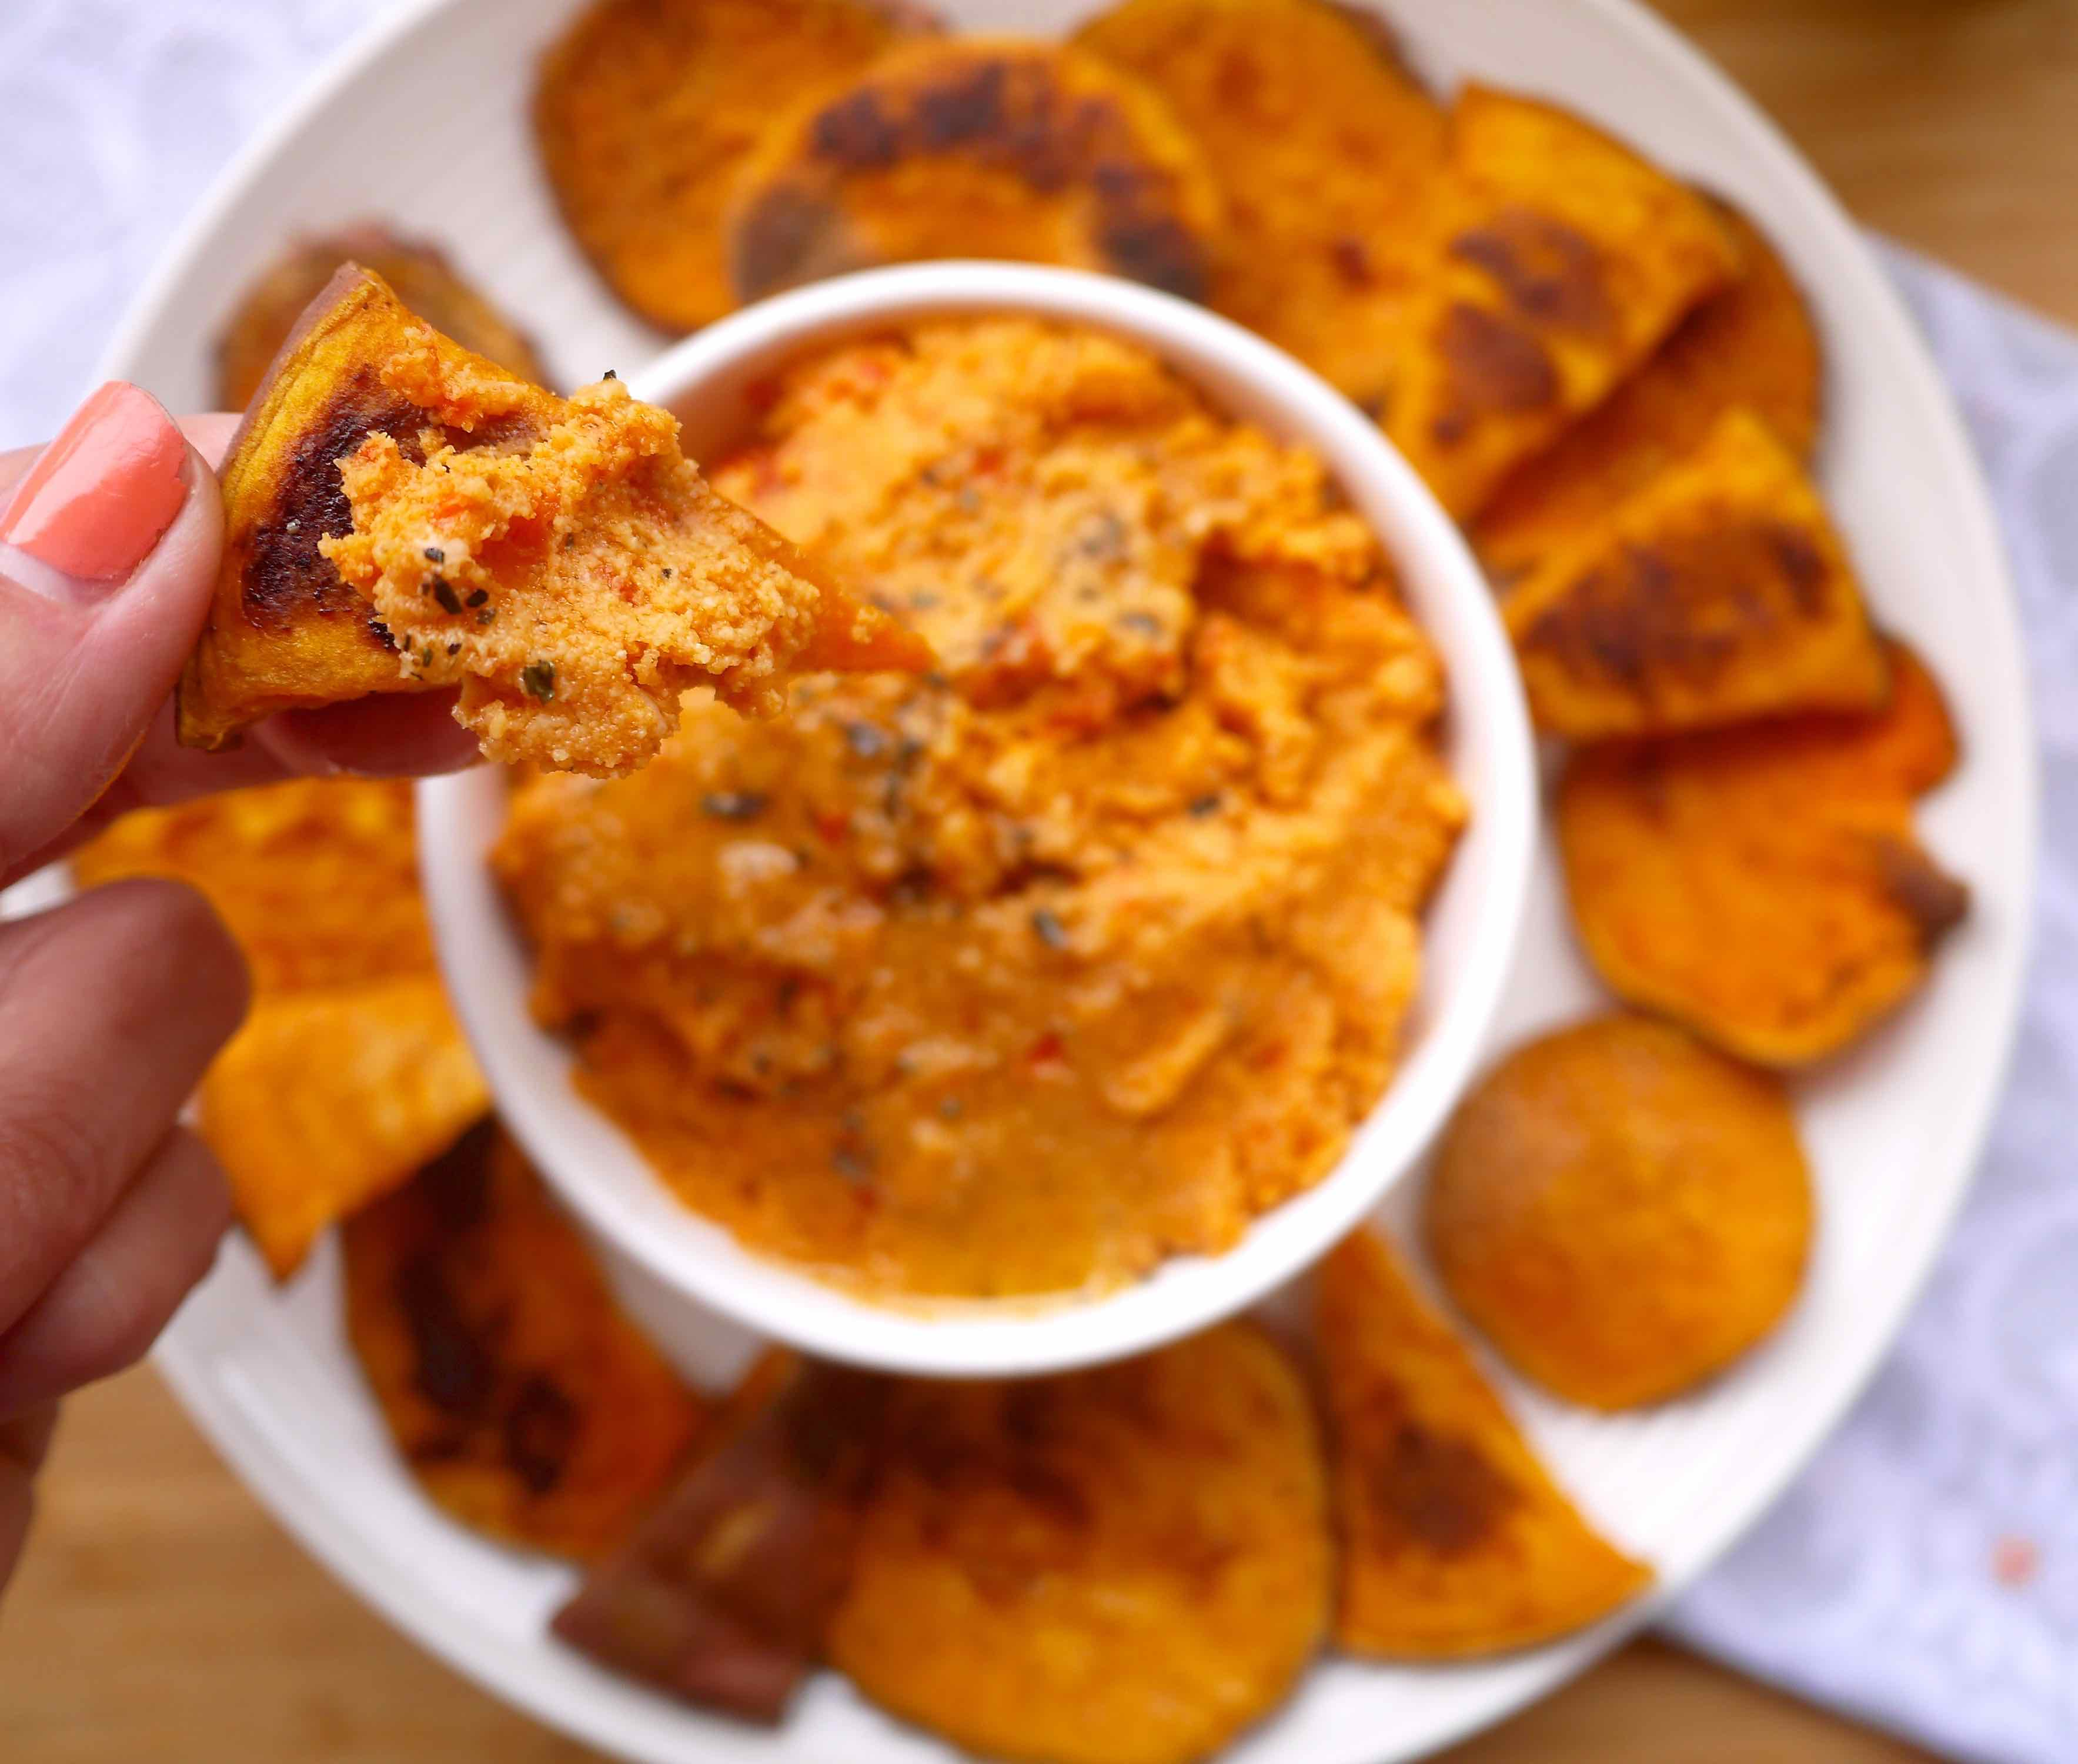 Paleo Garlic and Sun-dried Tomato Hummus (GF) | Perchance ...